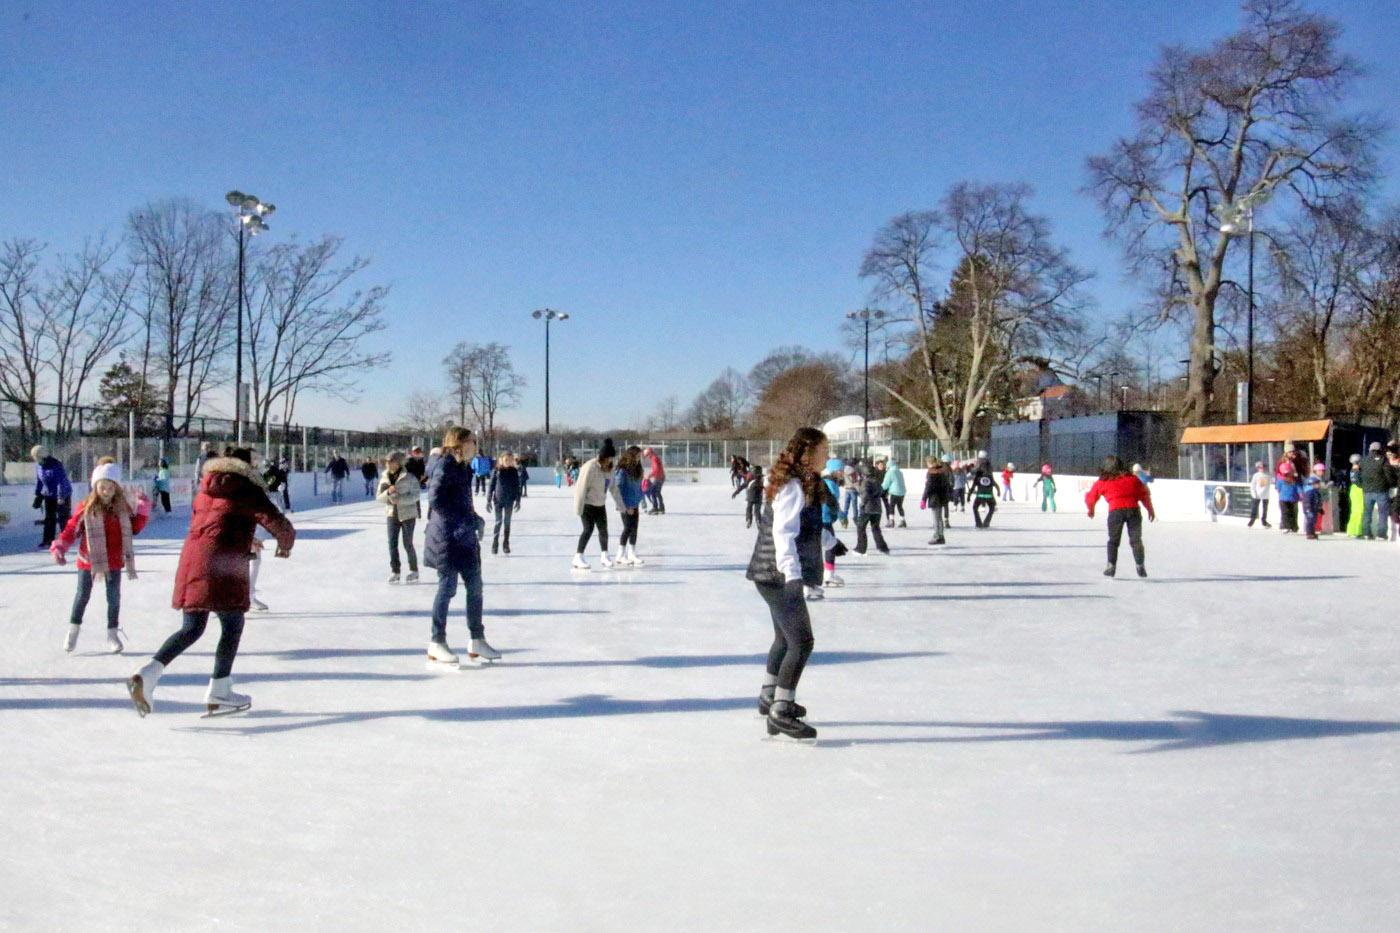 Westport citizens skate into the winter season